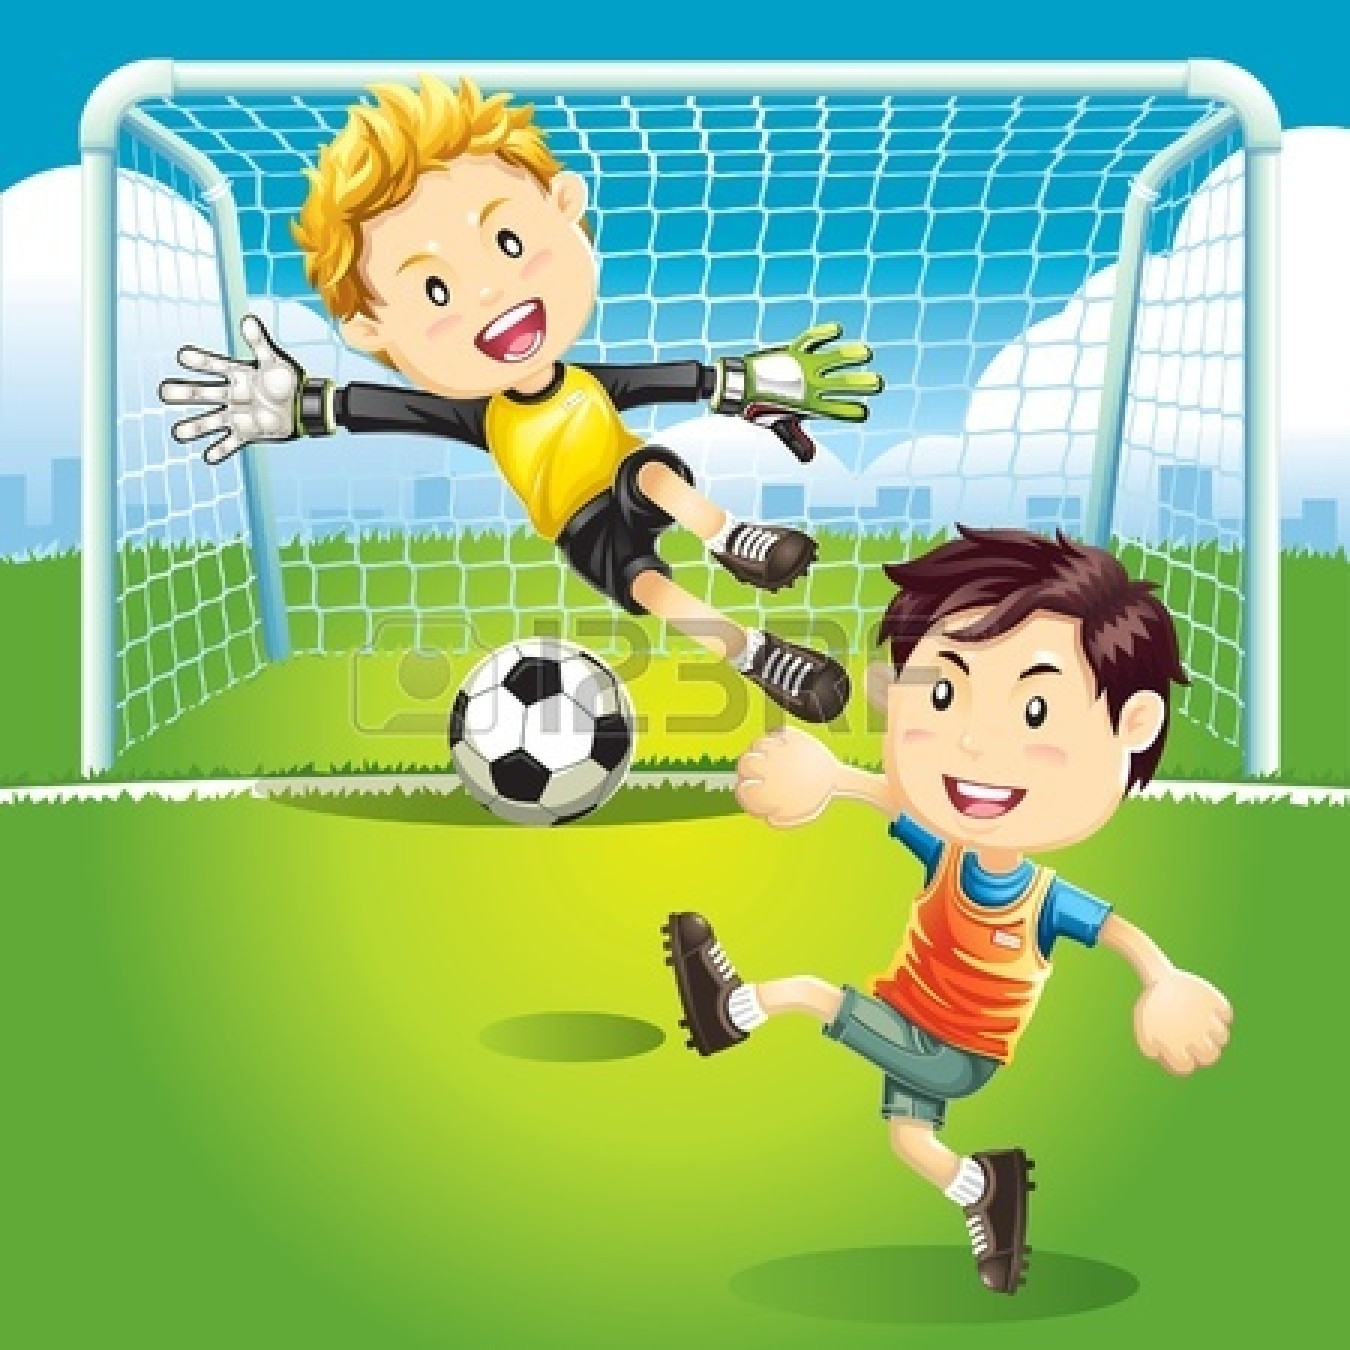 To The A Football Match | Free Images at Clker.com - vector clip art ...